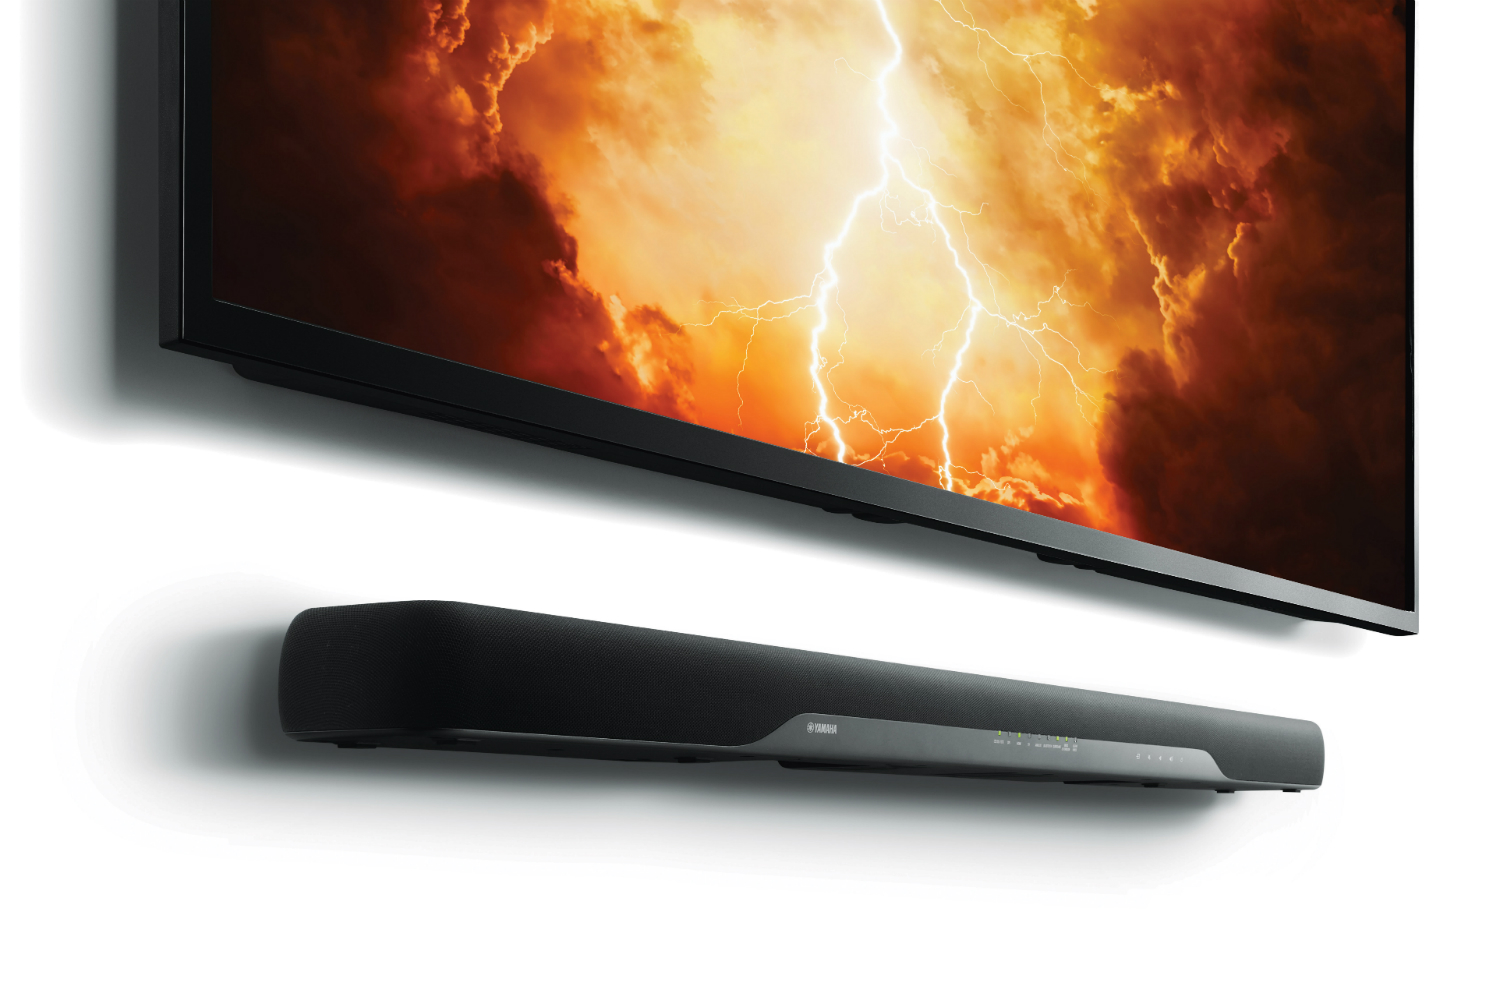 yamaha 39 s new yas 207 soundbar features exciting new. Black Bedroom Furniture Sets. Home Design Ideas